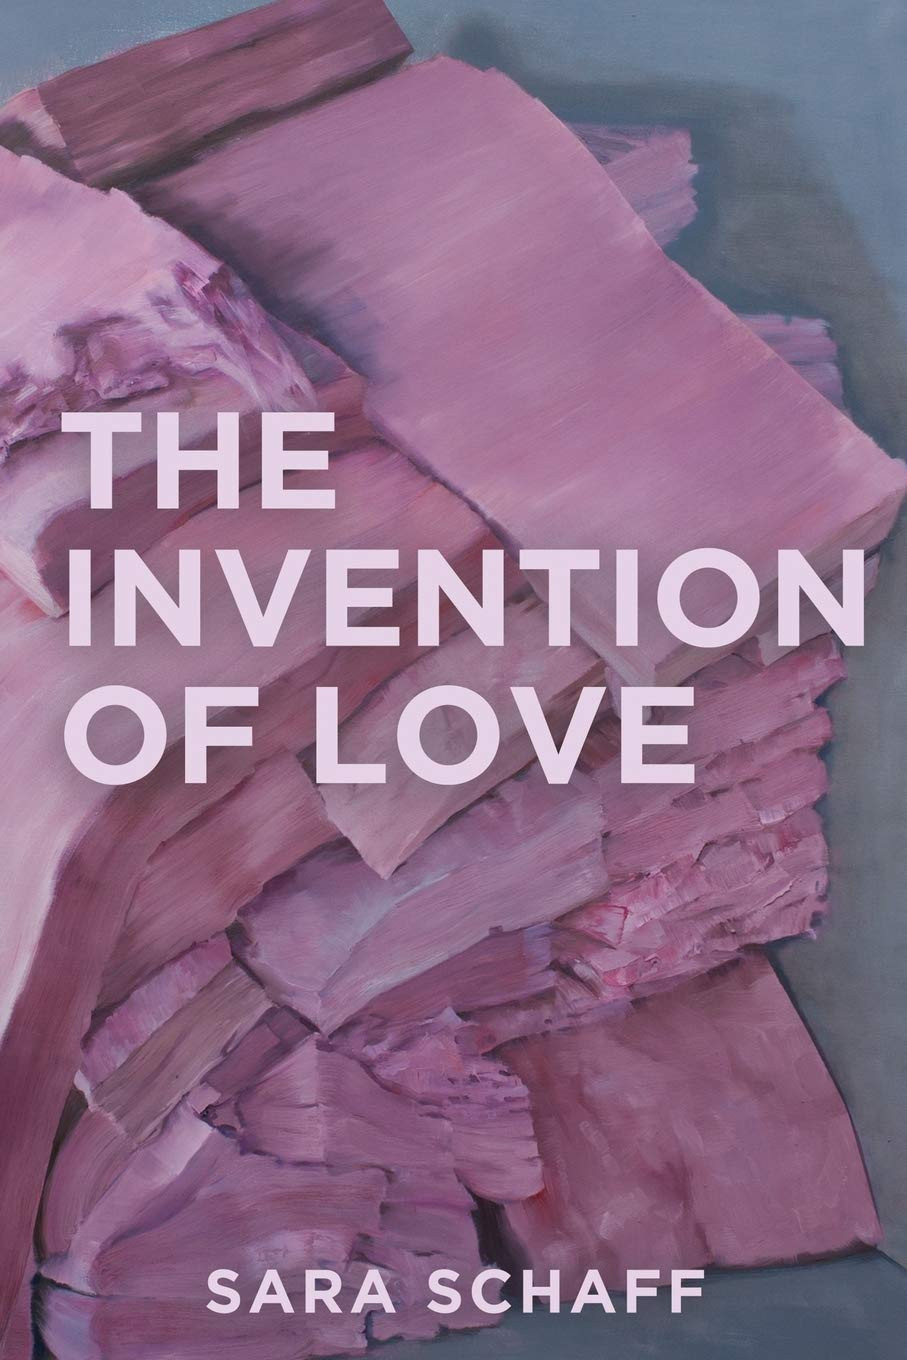 The Invention of Love Sara Schaff. The Book Slut book reviews, thebookslut, What is love if not an invention-not just human instinct but artful construction? The women who people The Invention of Love, Sara Schaff's second story collection, long to conceive of themselves as artists, as lovers, as good sisters and daughters-while contending with financial insecurity and the reality of twenty-first century womanhood. A college student finds her voice as an artist through a tiny lie. A woman grieves her mother's death by shopping for houses she can't afford and will never live in. Against the backdrop of the 2016 election, a copywriter contends with misogyny in the workplace by using that very misogyny against her incompetent male boss. Nostalgic for the women they were or might have been-or still might yet become-their stories illuminate the moments where everything changes-even when what changes is how we must see our futures. Product Details Price $16.00 Publisher Split/Lip Press Publish Date May 15, 2020 Pages 158 Dimensions 5.98 X 0.37 X 9.02 inches | 0.53 pounds Language English Type Paperback EAN/UPC 9781952897009 BISAC Categories: Short Stories (single author)